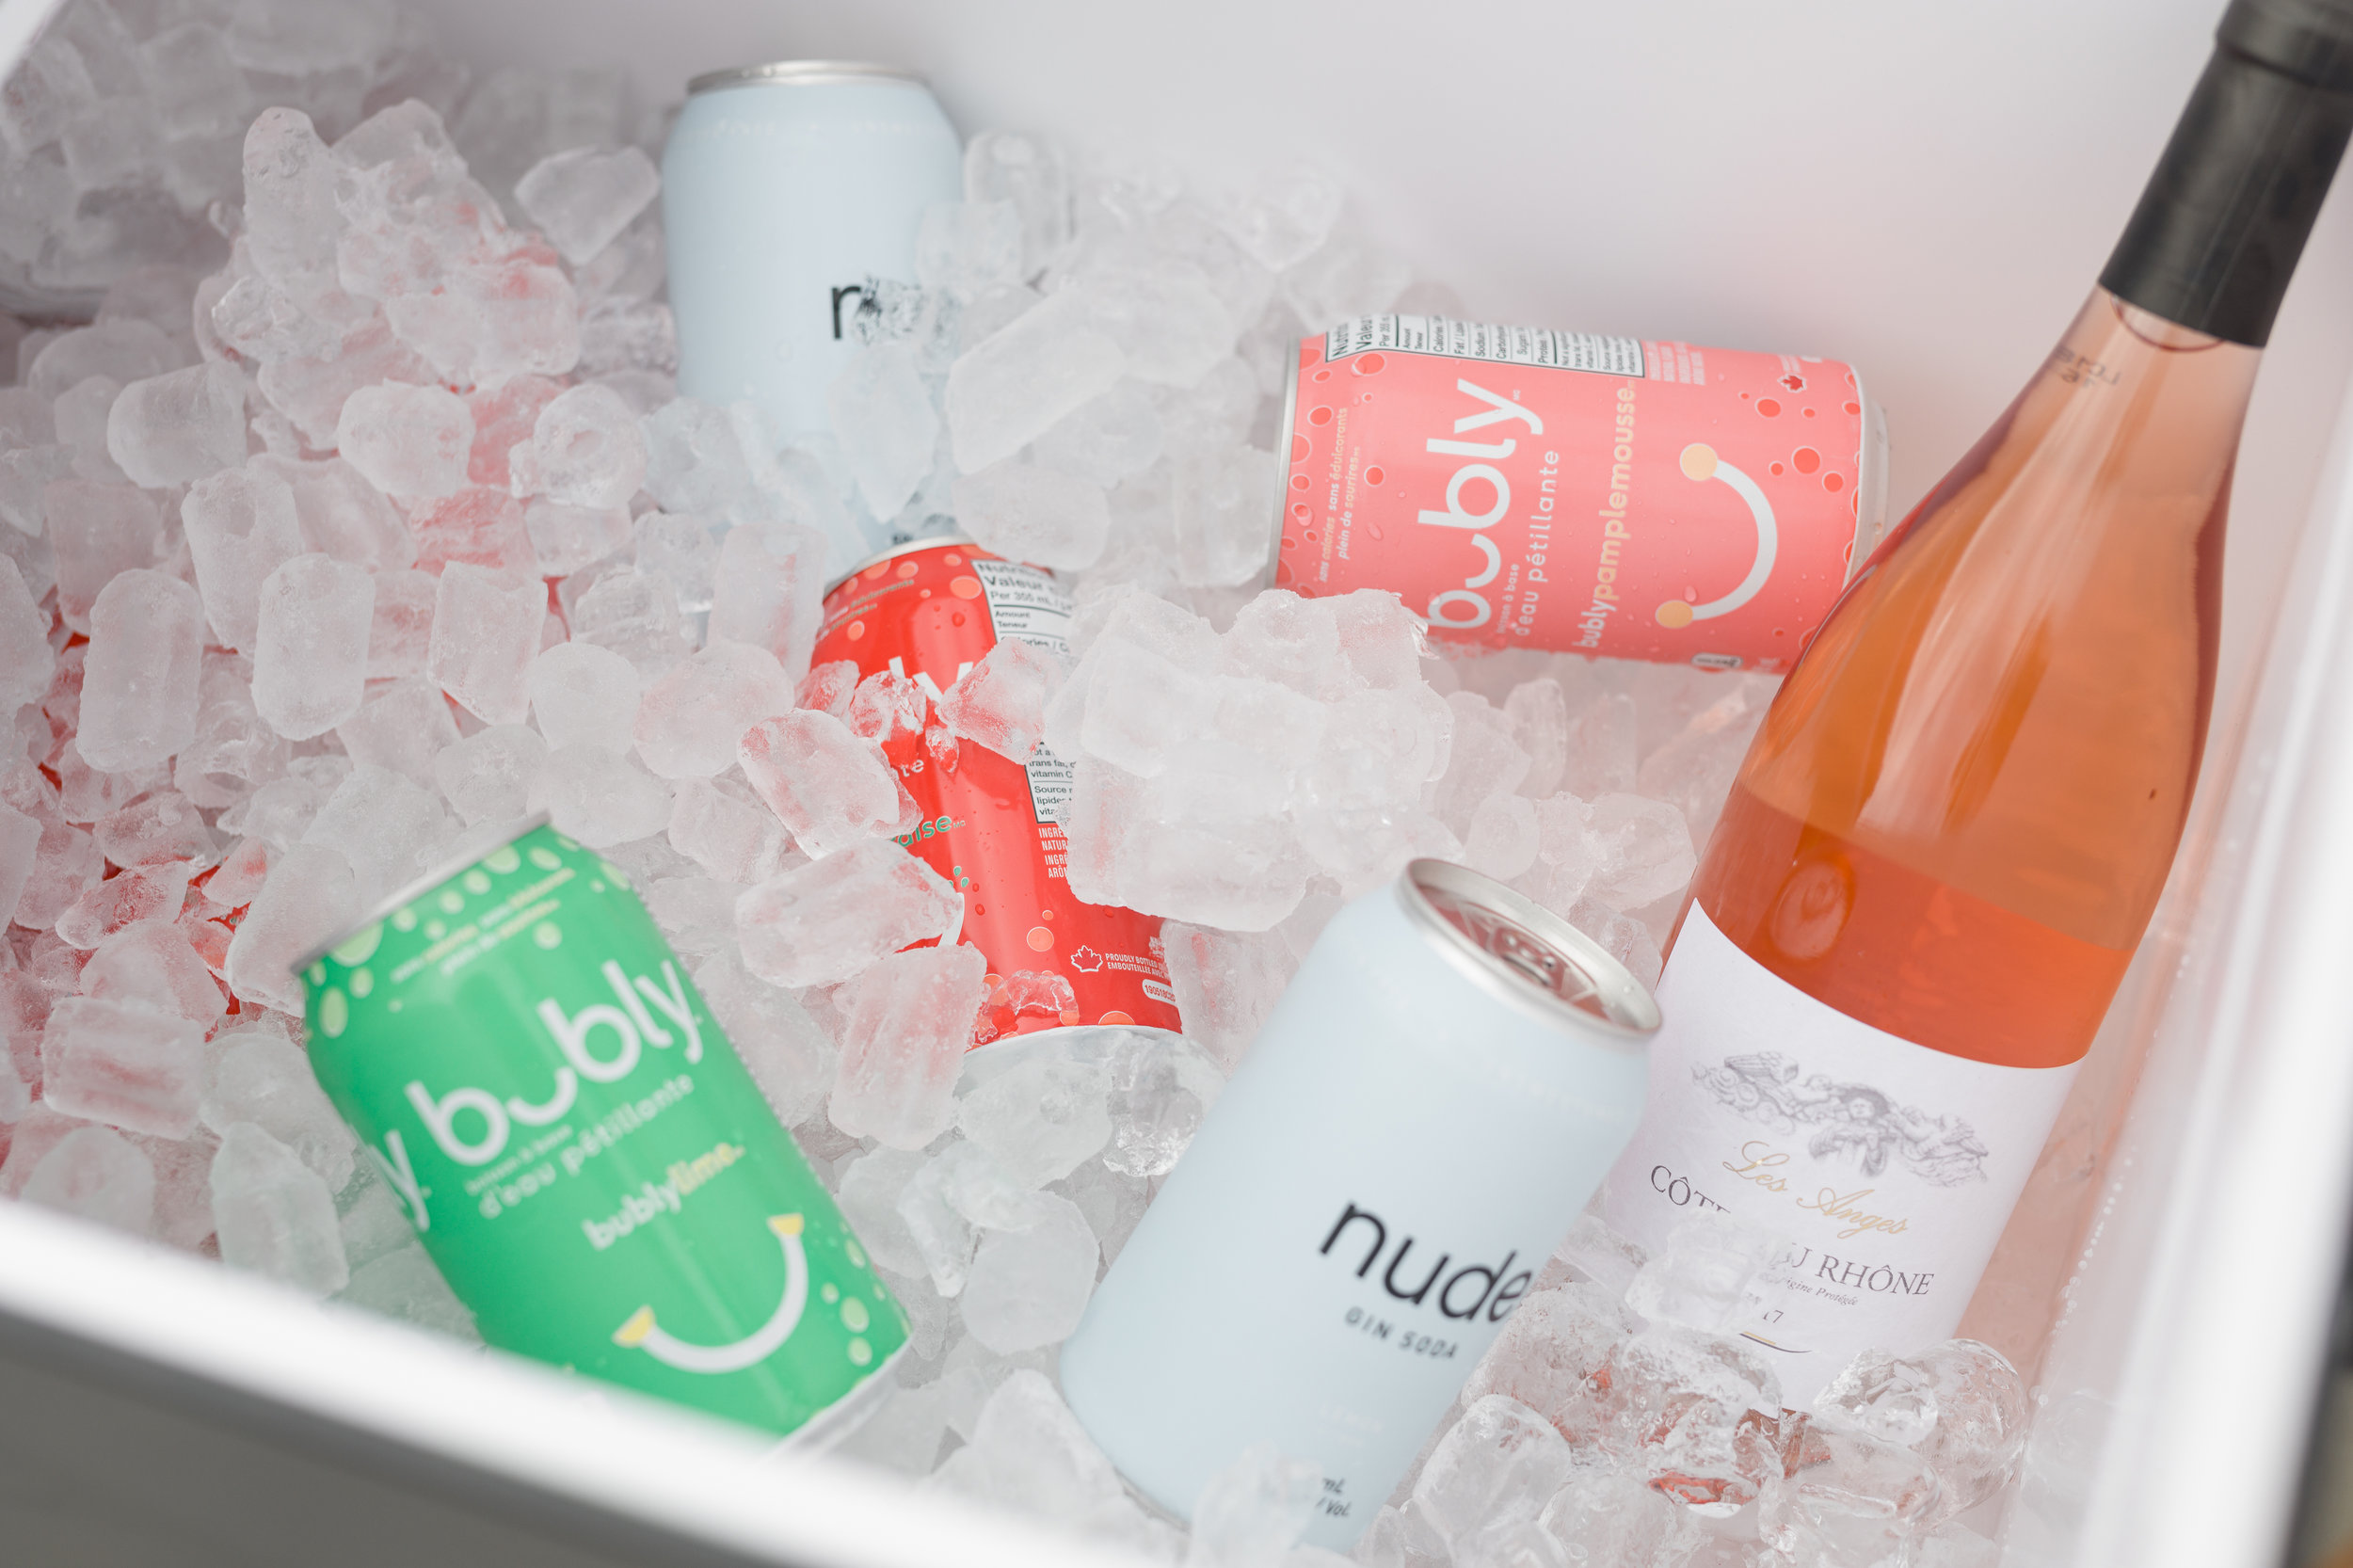 Who needs an outdoor fridge when you have a rolling cooler? Your portable bartender - it can even remove bottle caps!